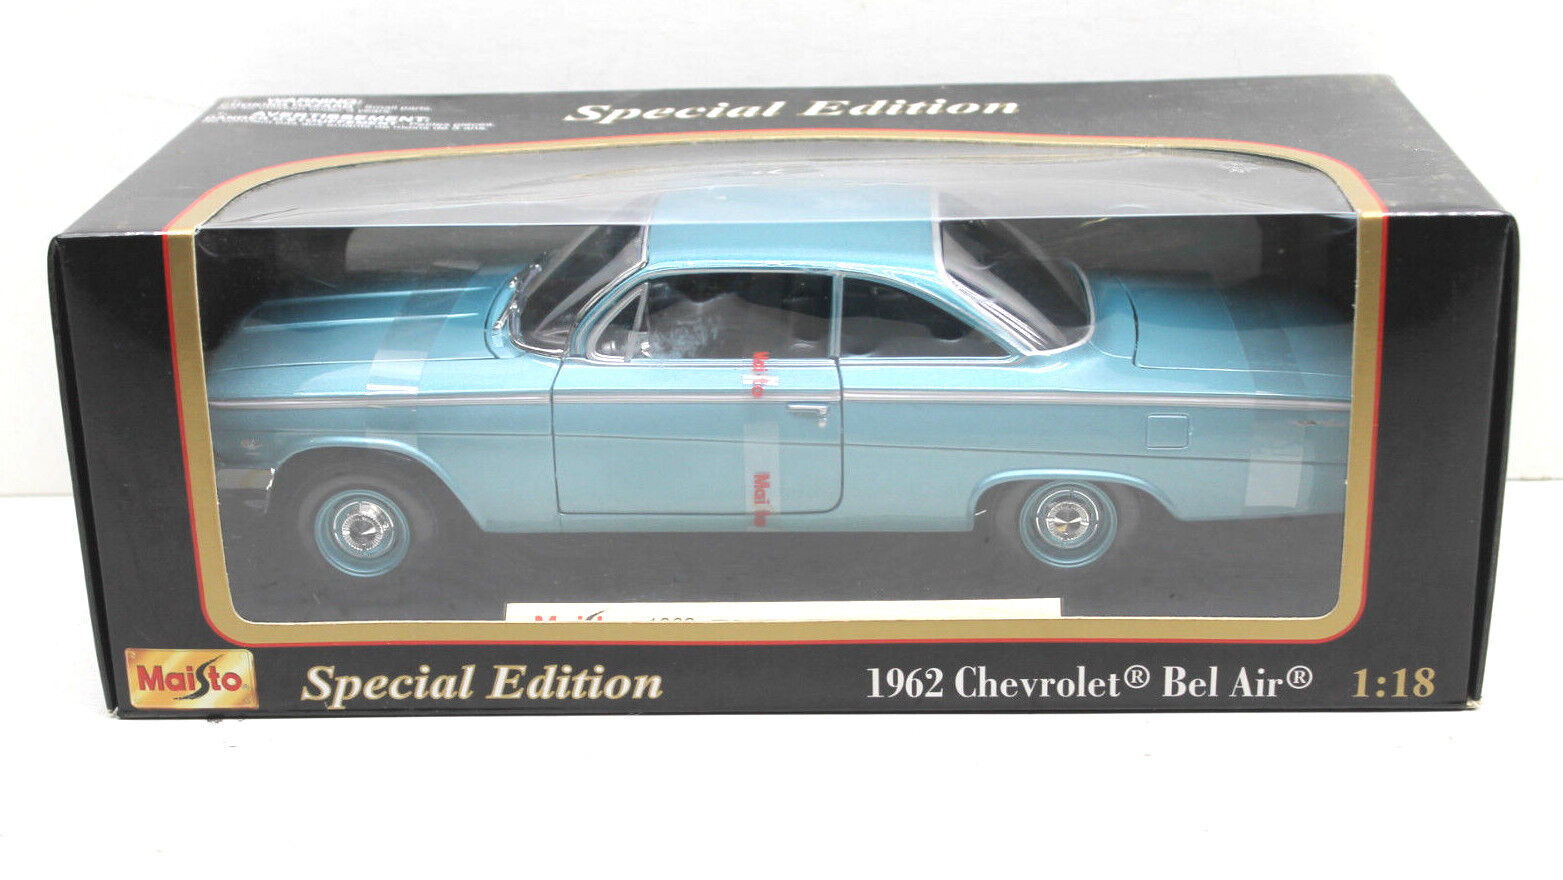 Vintage Maisto 1962 Chevrolet Bel Air Diecast Metal Car 1 18 Scale SE